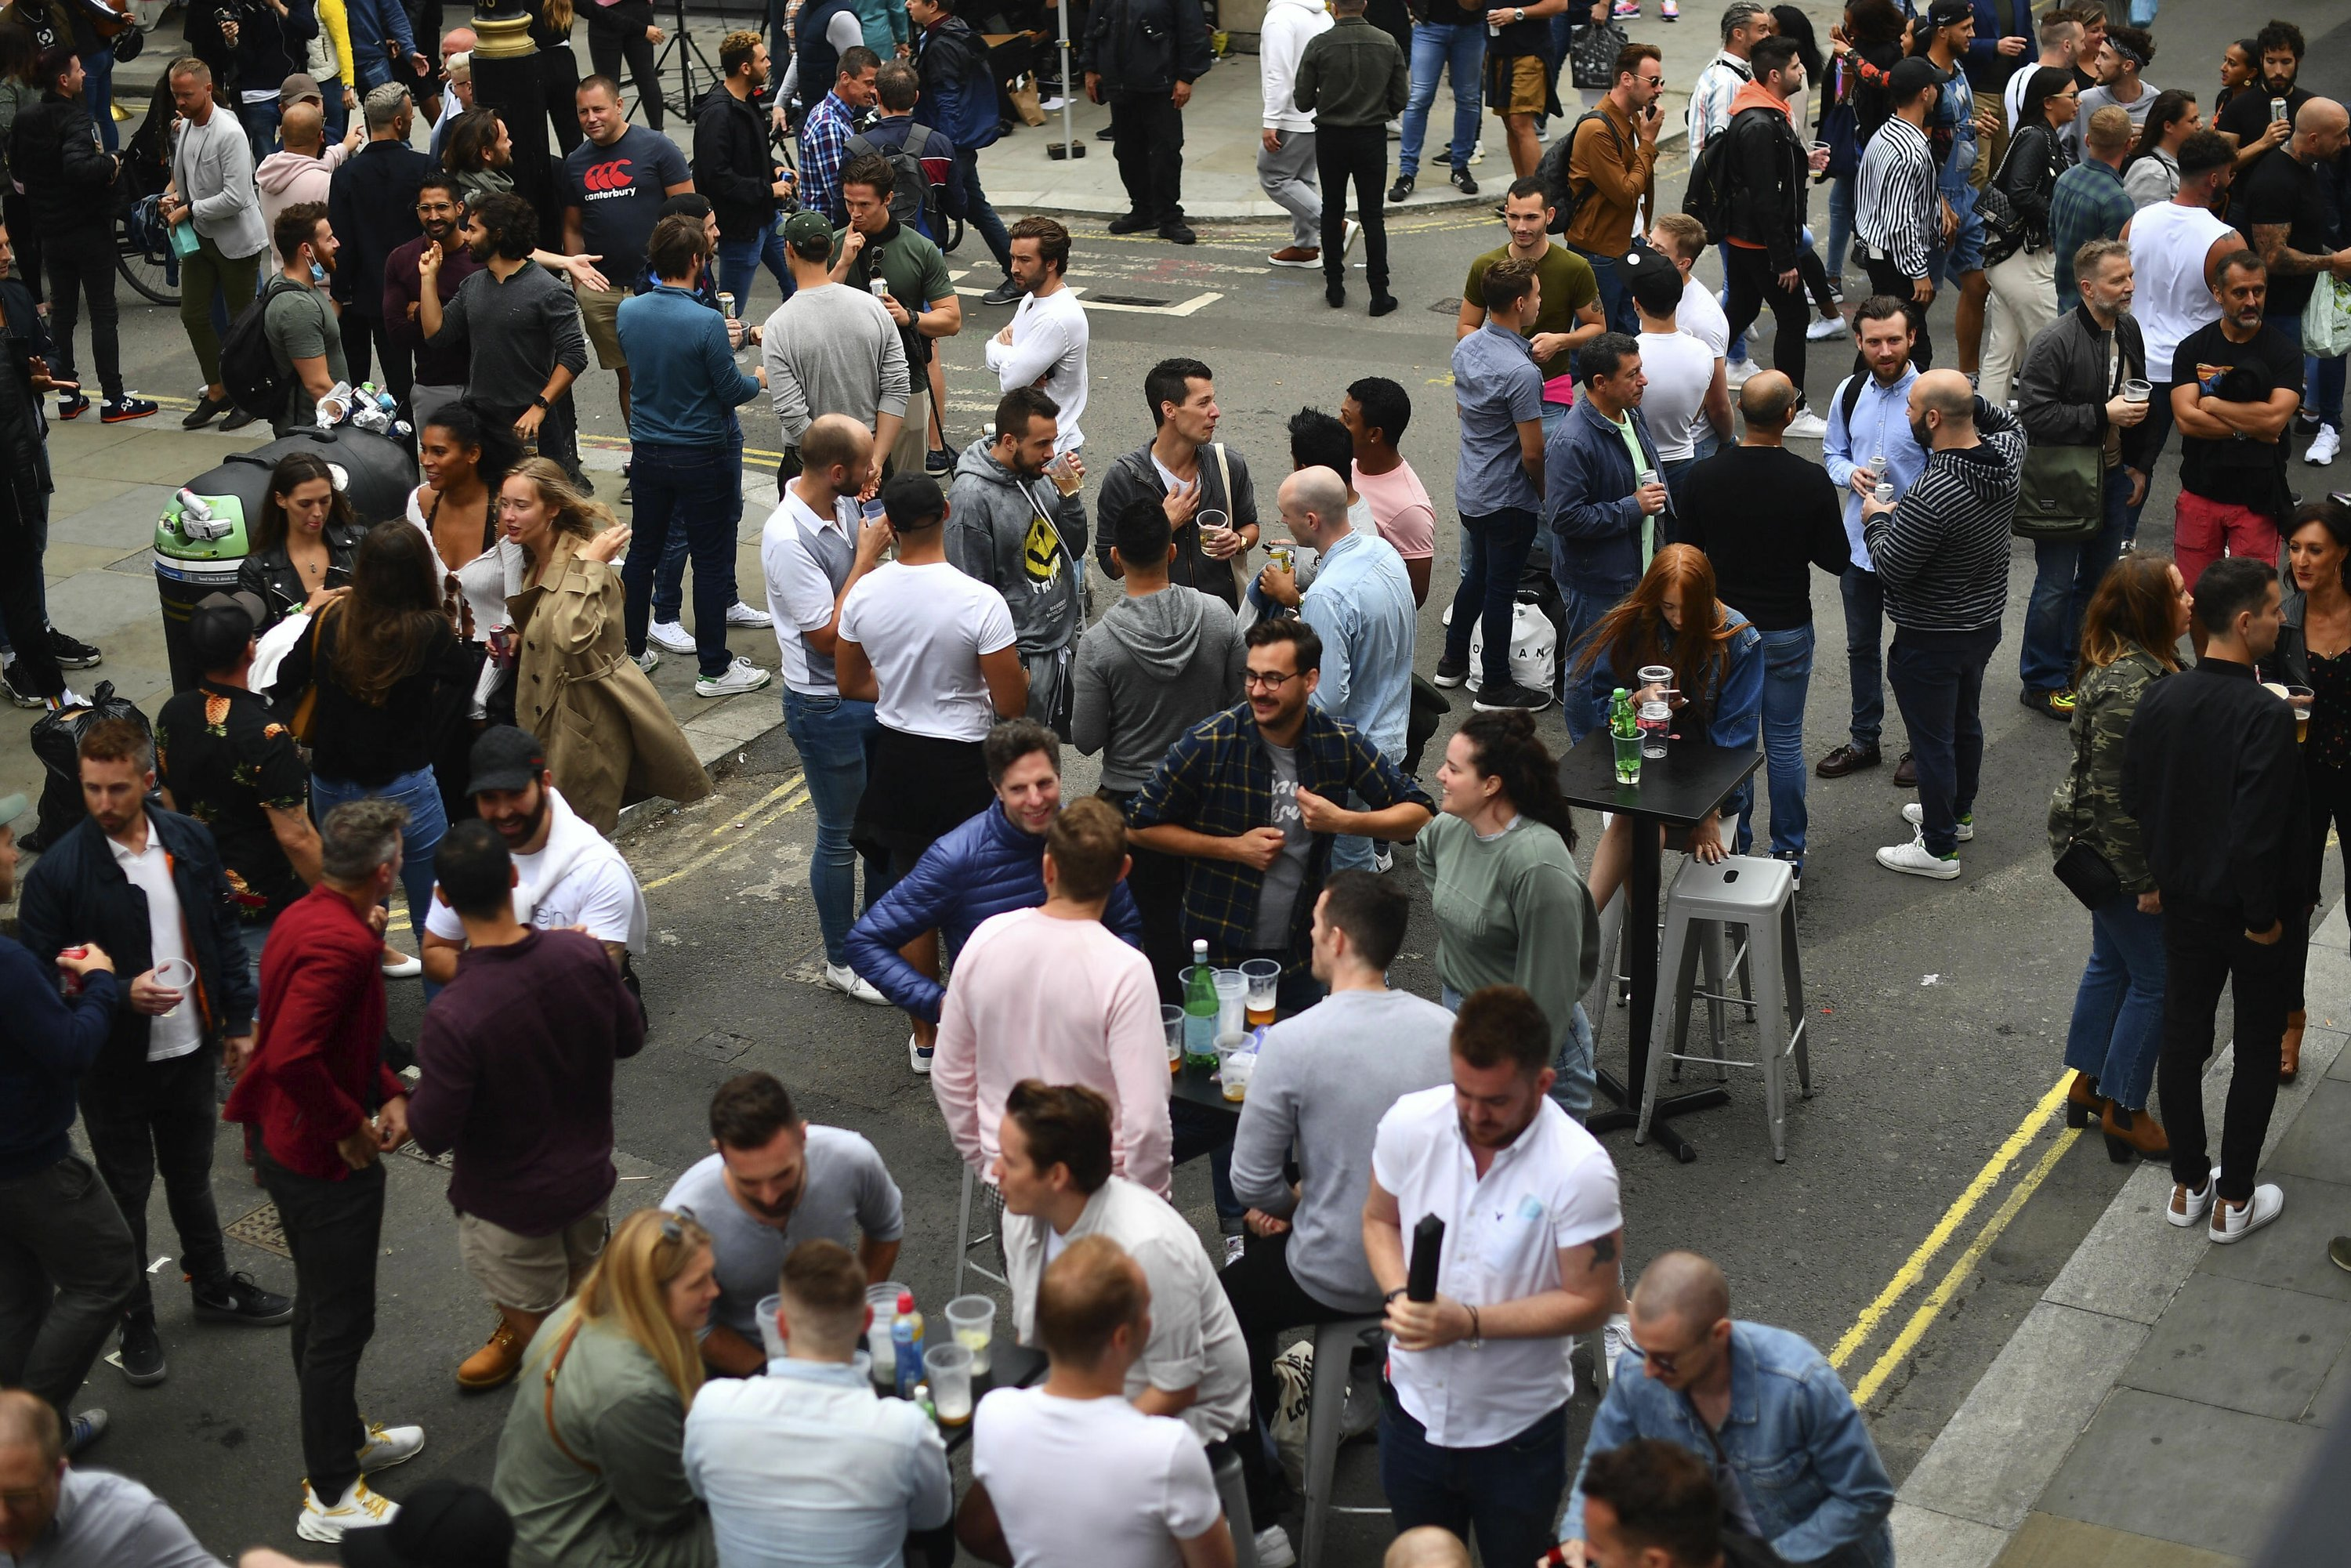 Naked men and drunks: England assesses the reopening of pubs